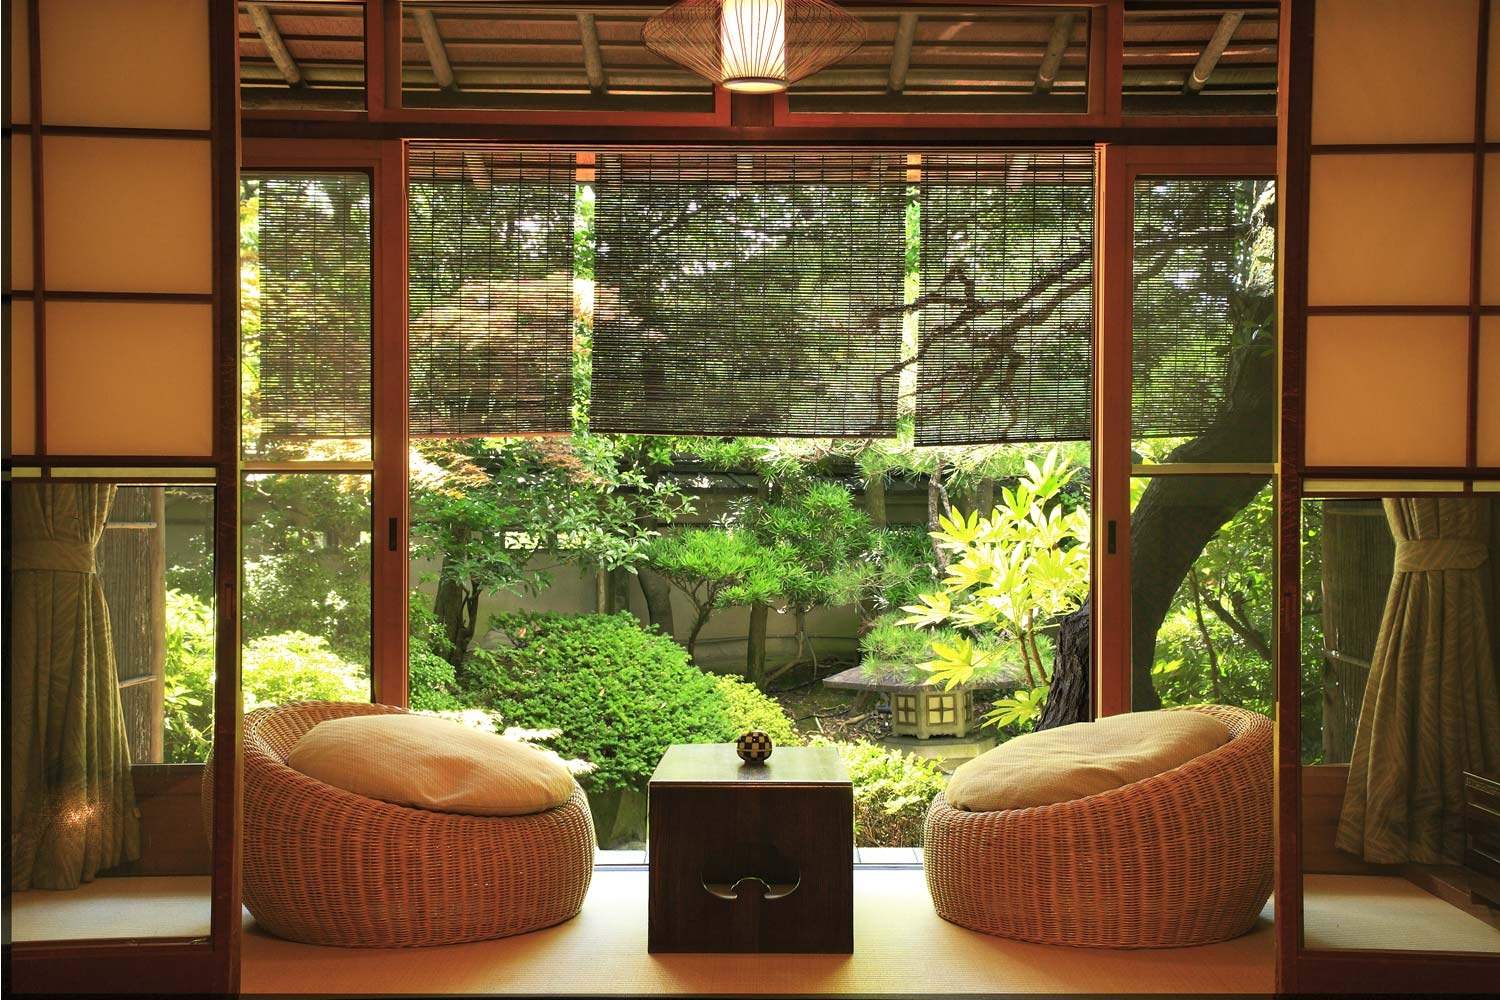 Zen inspired interior design Home and garden interior design